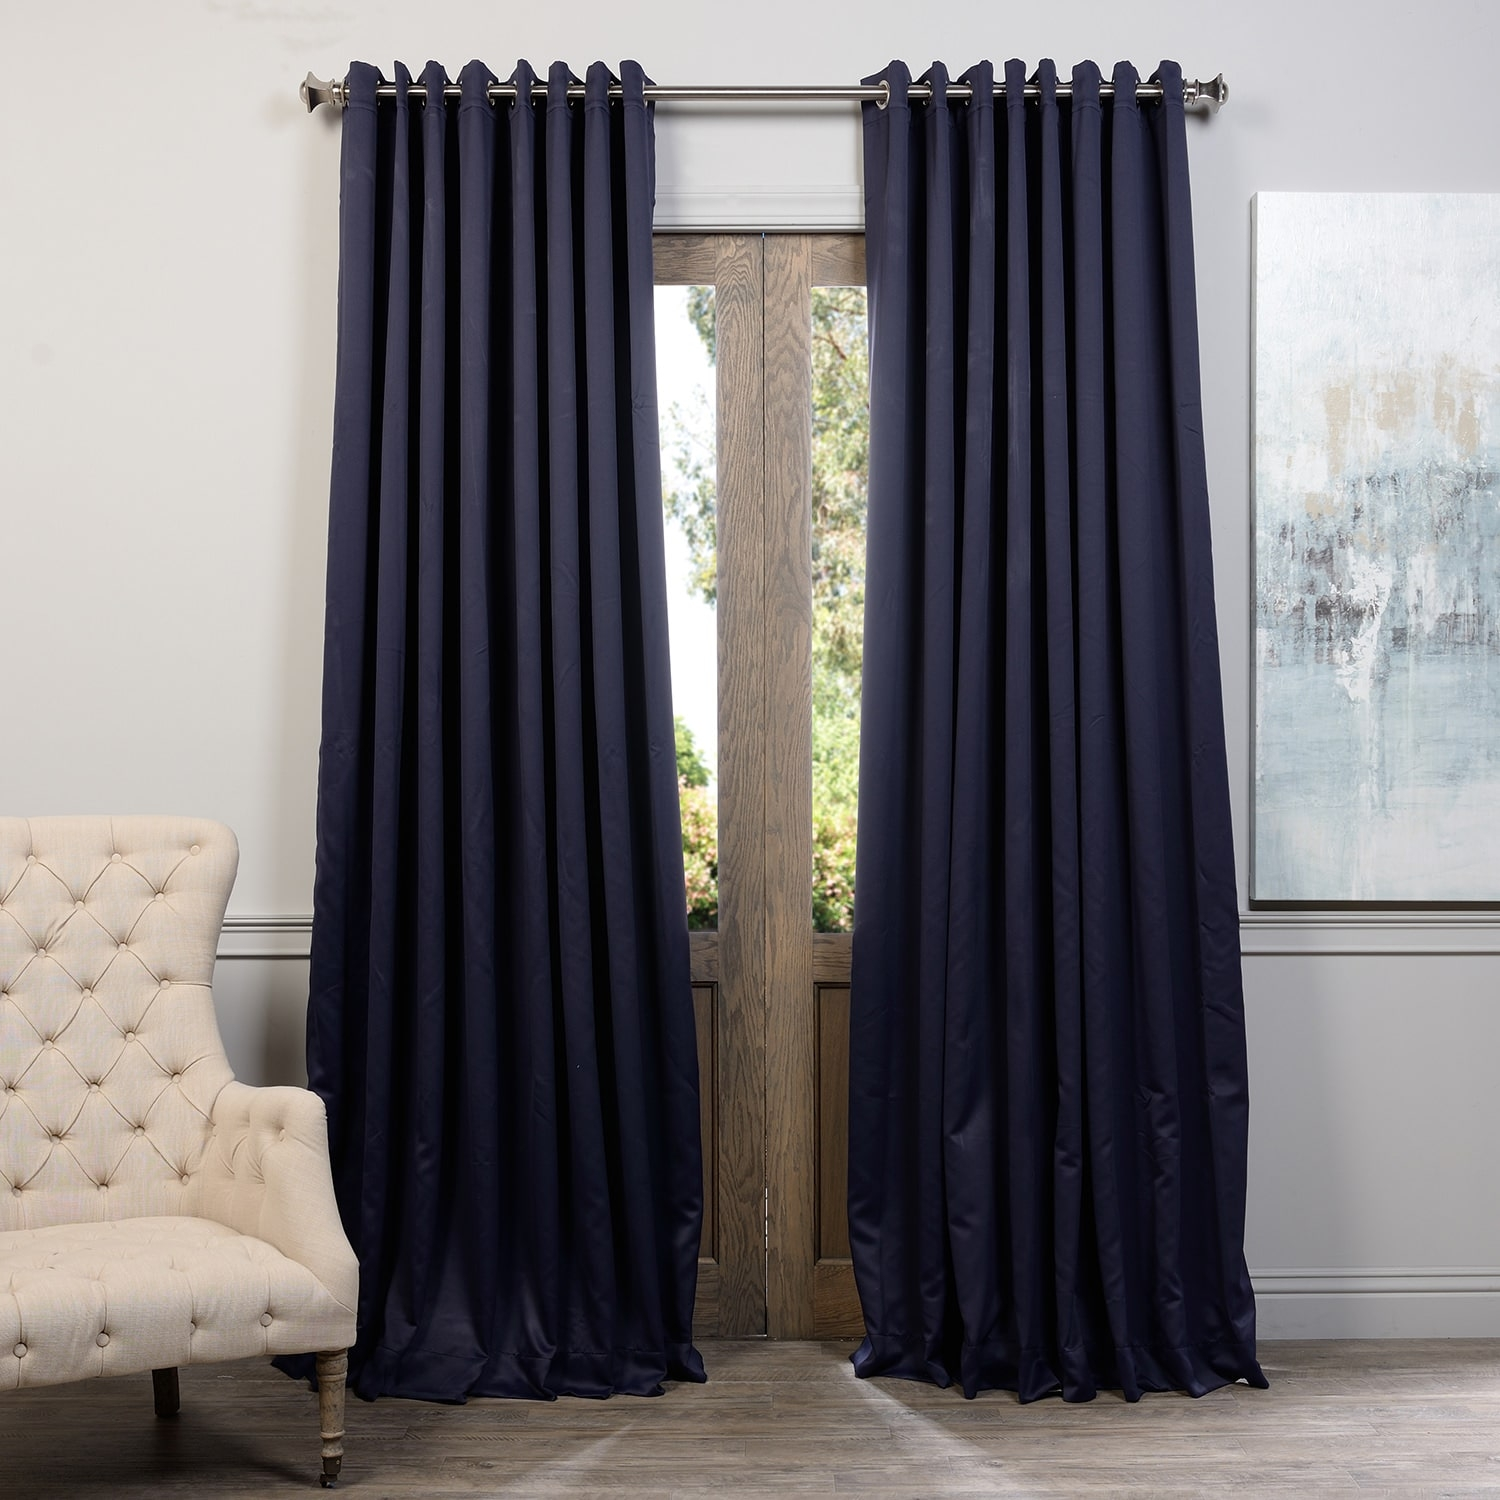 108 Inches Curtains Drapes Shop The Best Brands Overstock In Ready Made Curtains 120 Inch Drop (View 14 of 15)